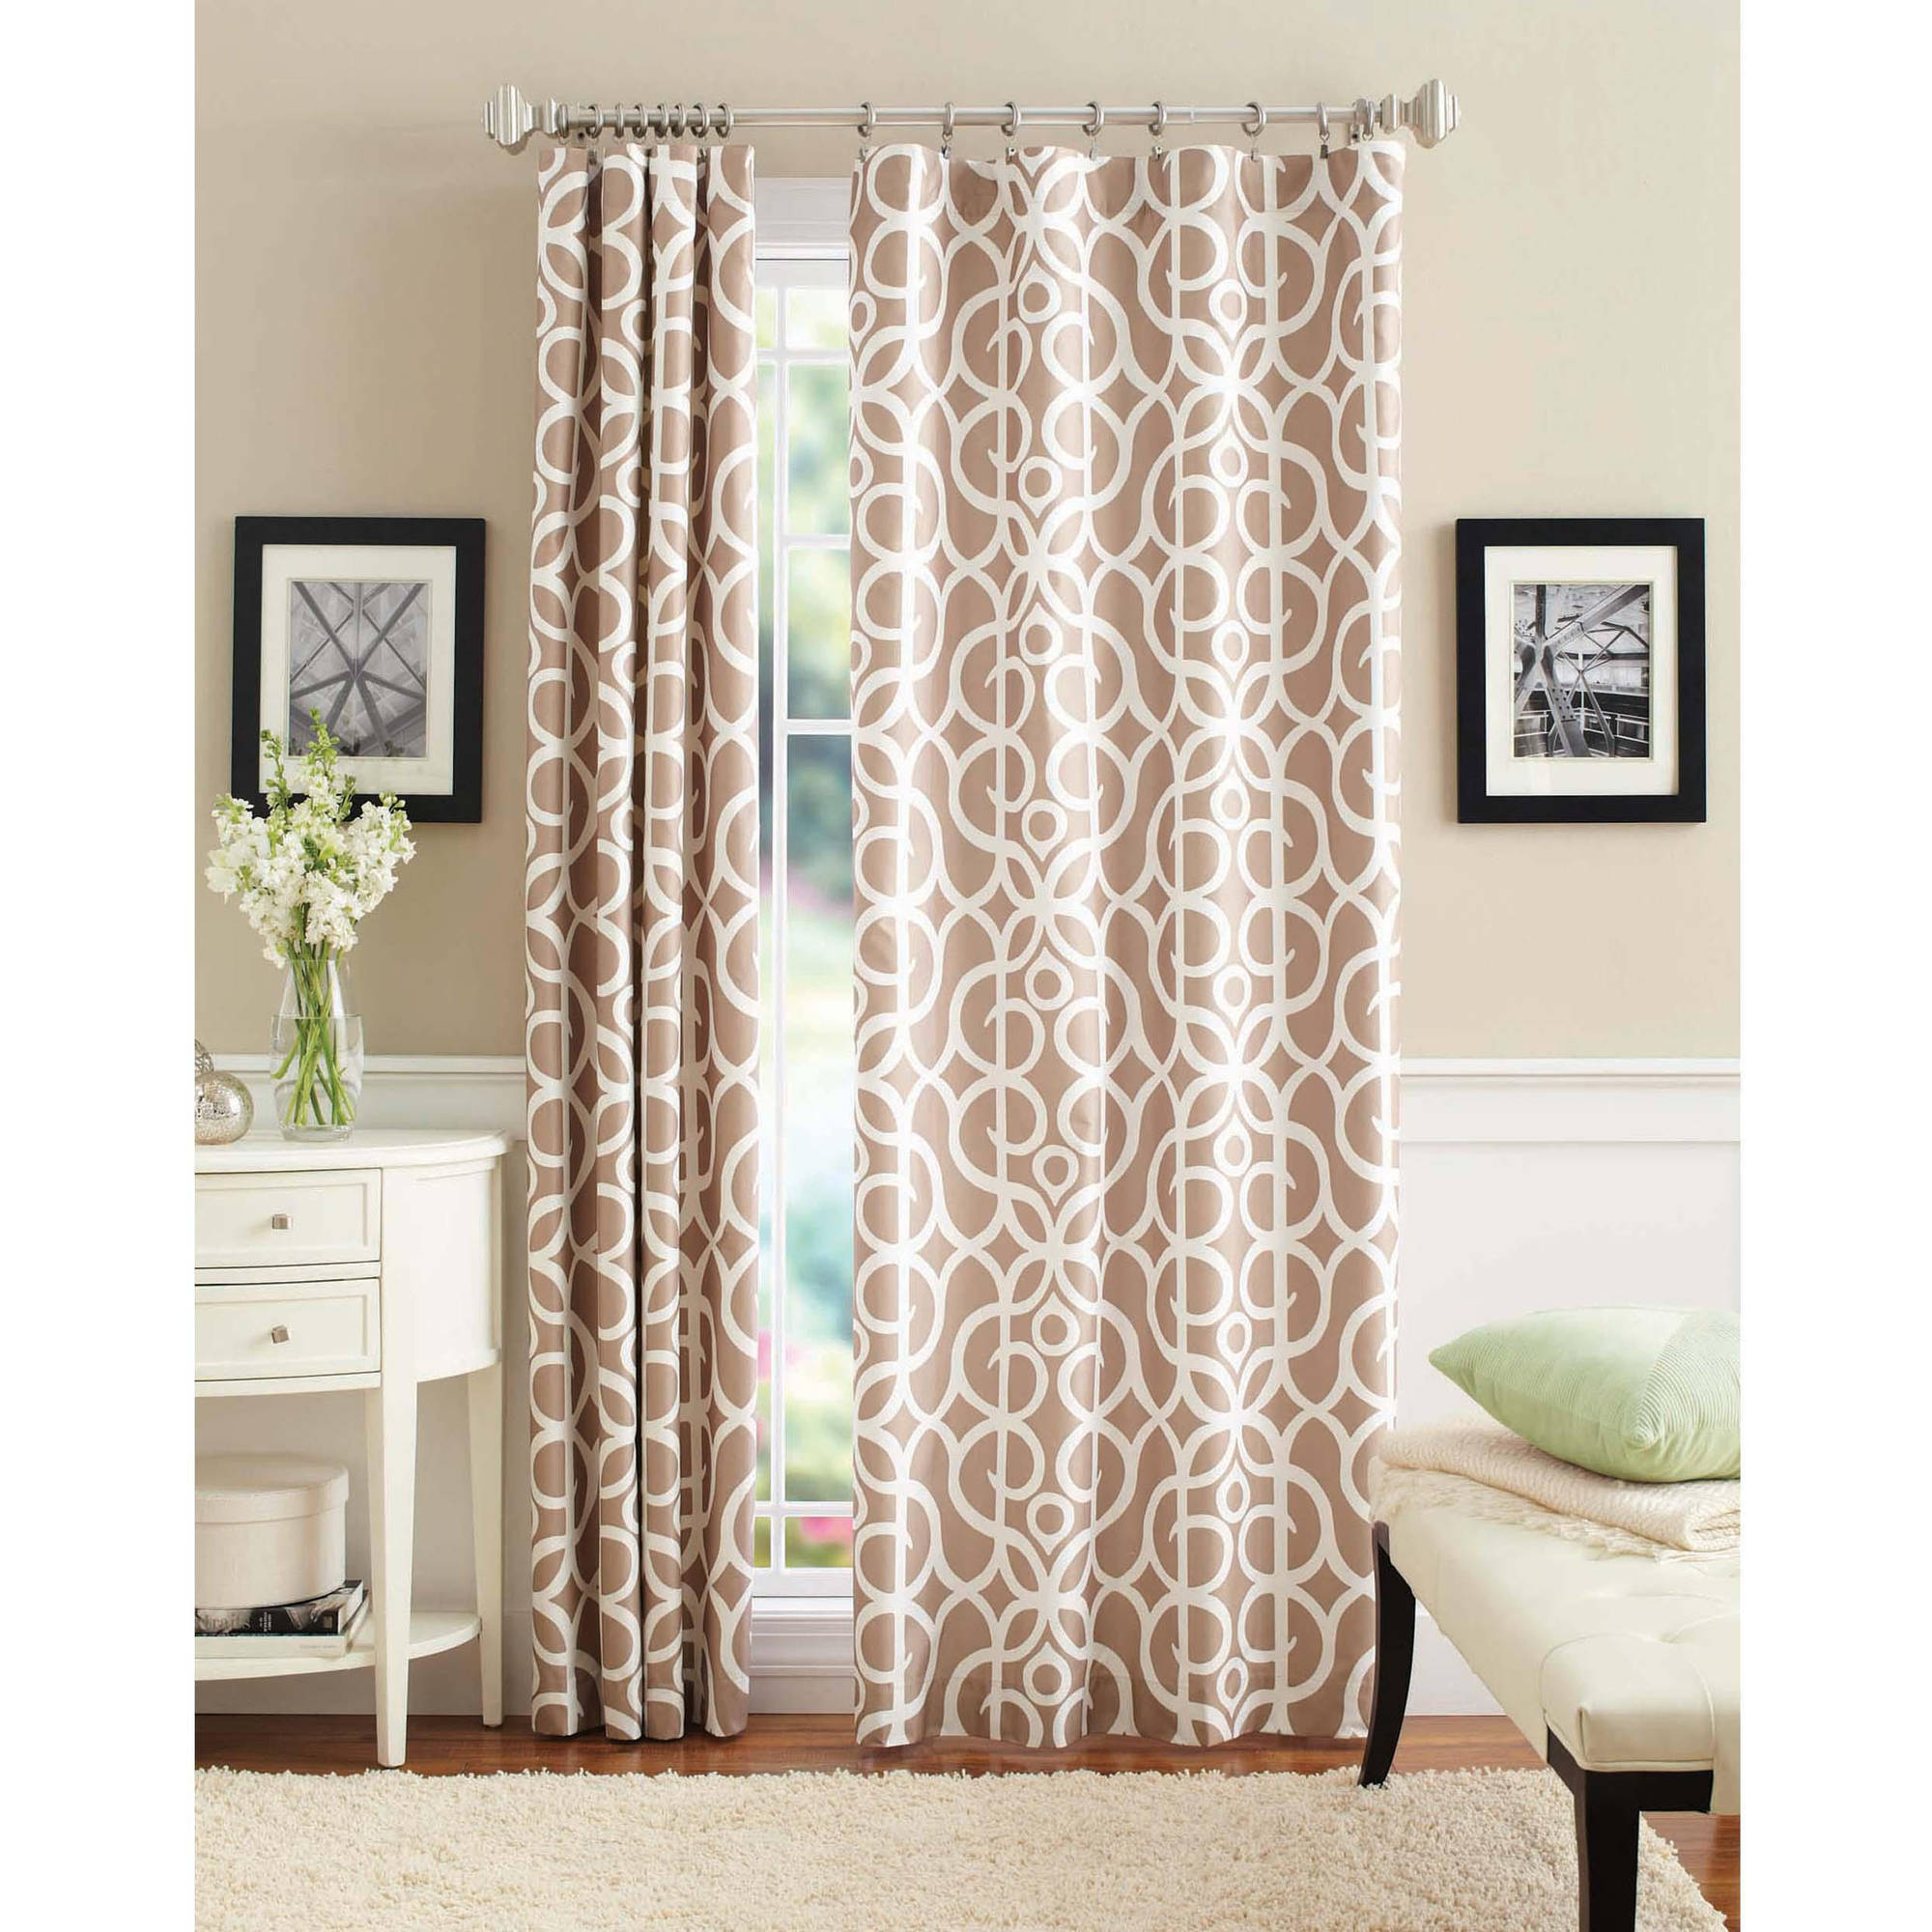 Better Homes and Gardens Marissa Curtain Panel